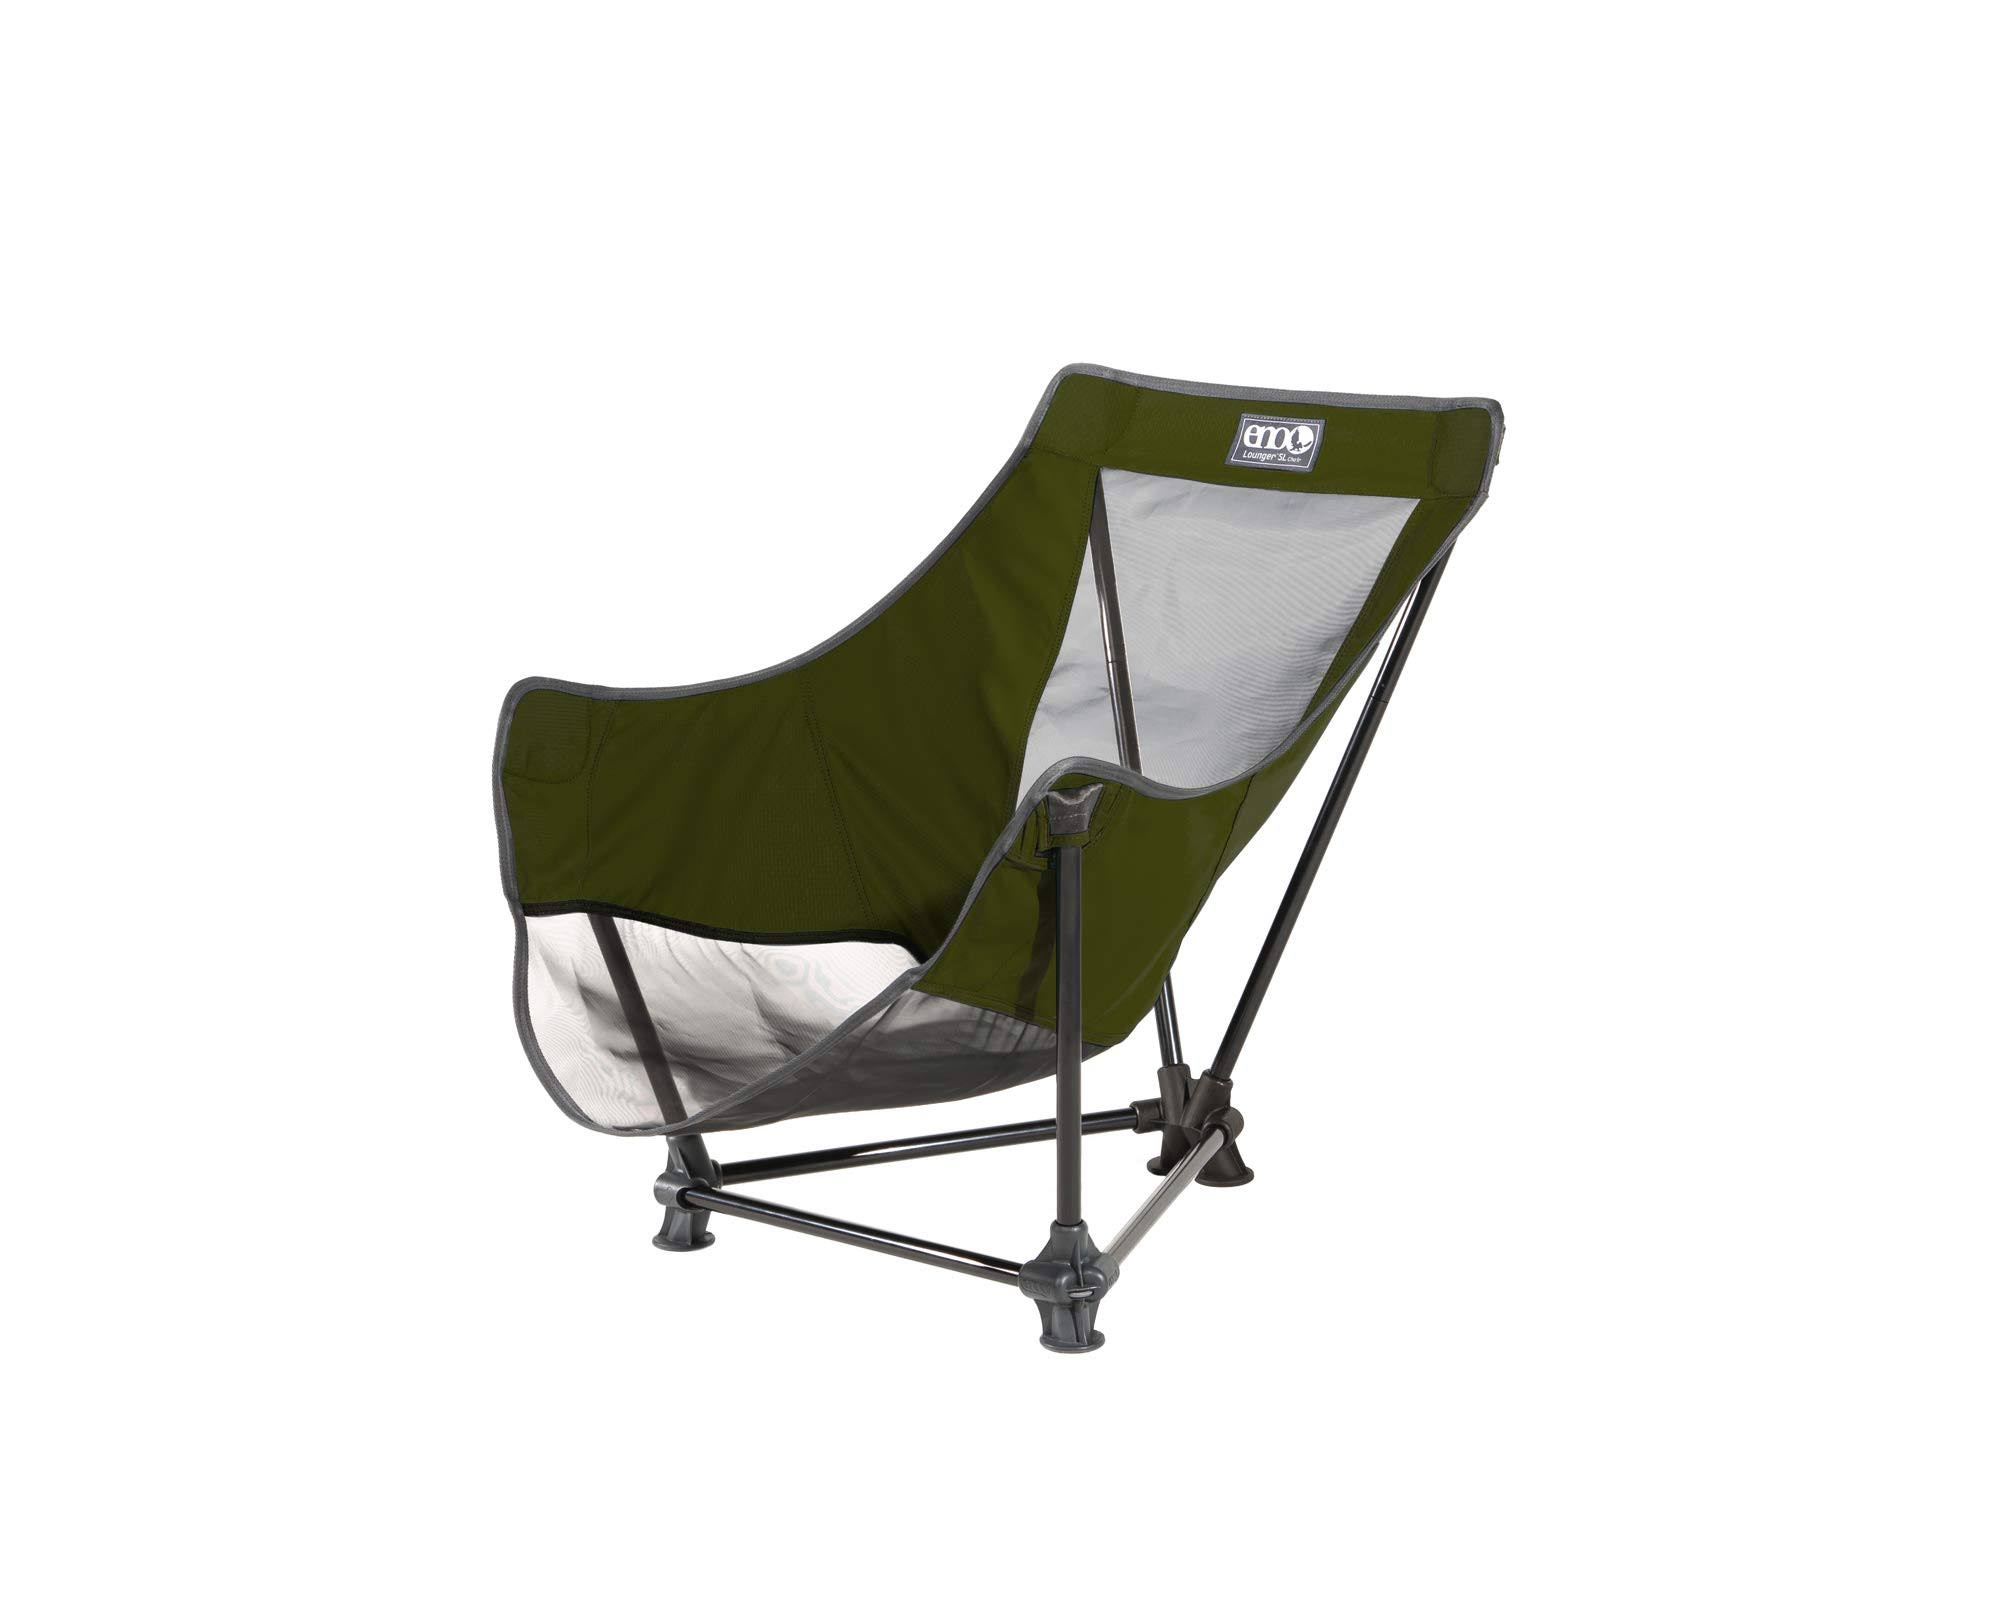 Eagles Nest Outfitters Lounger SL Chair - Olive